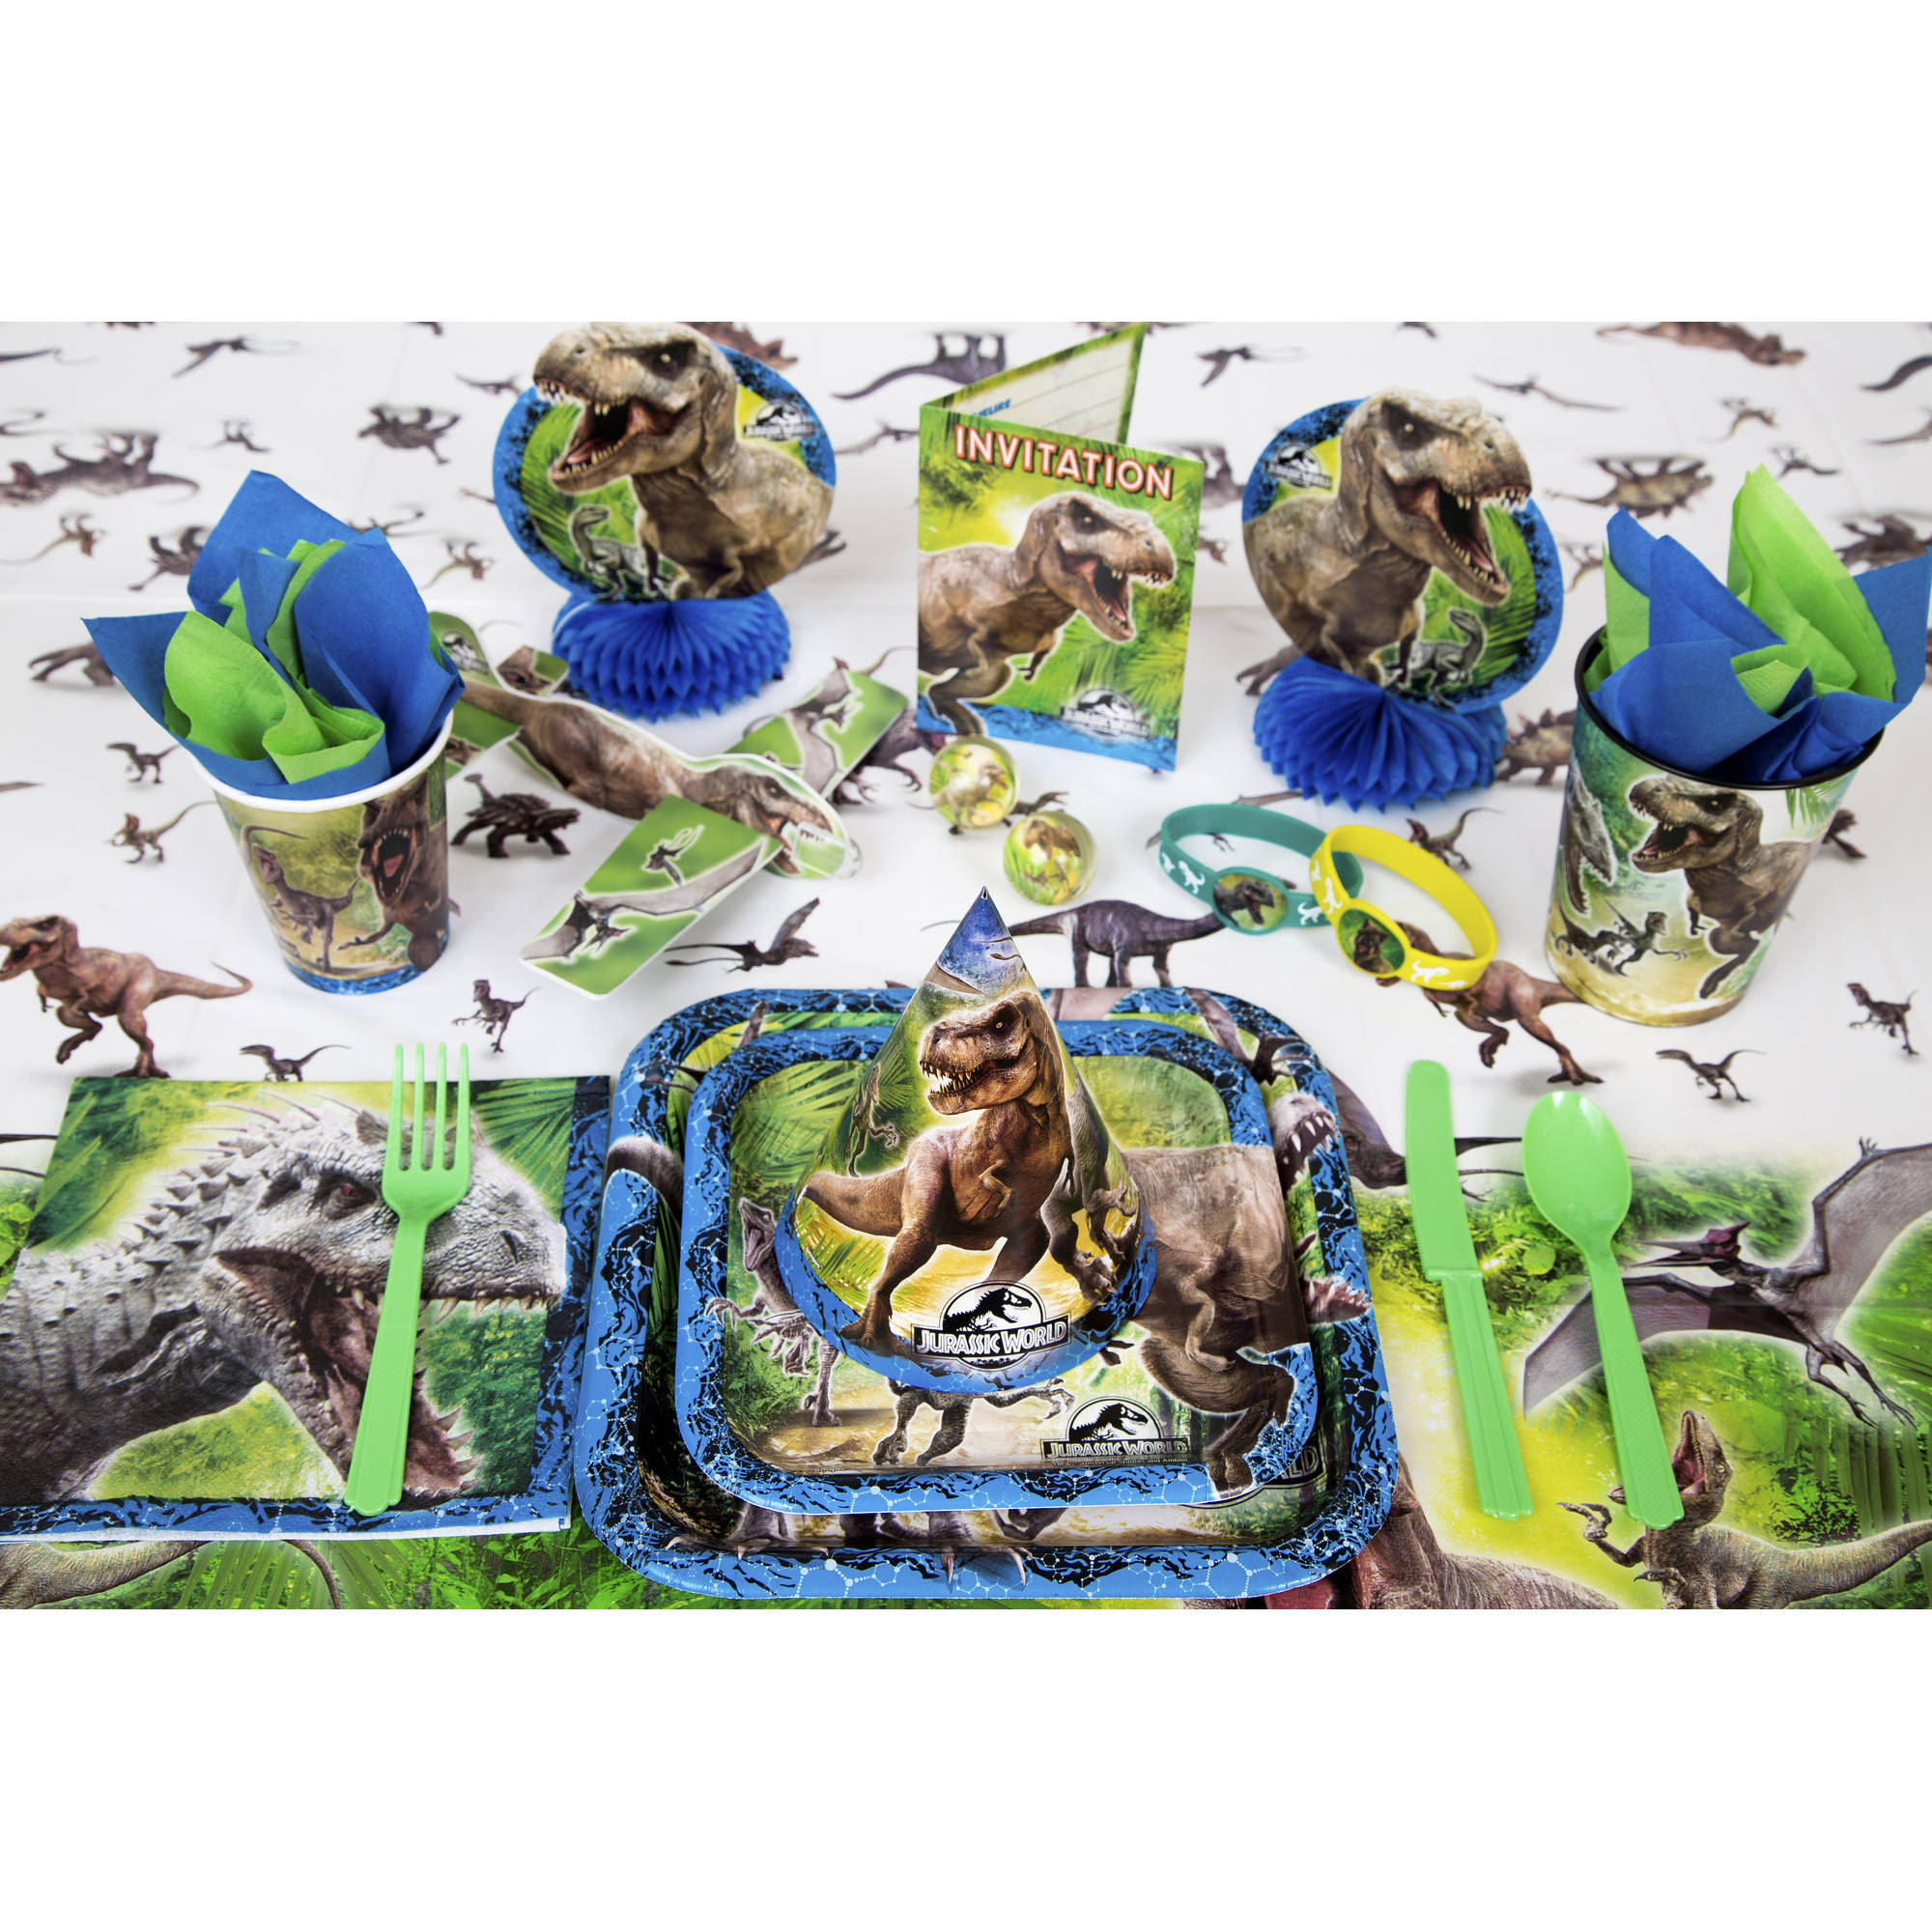 Jurassic World Party Supplies Walmartcom